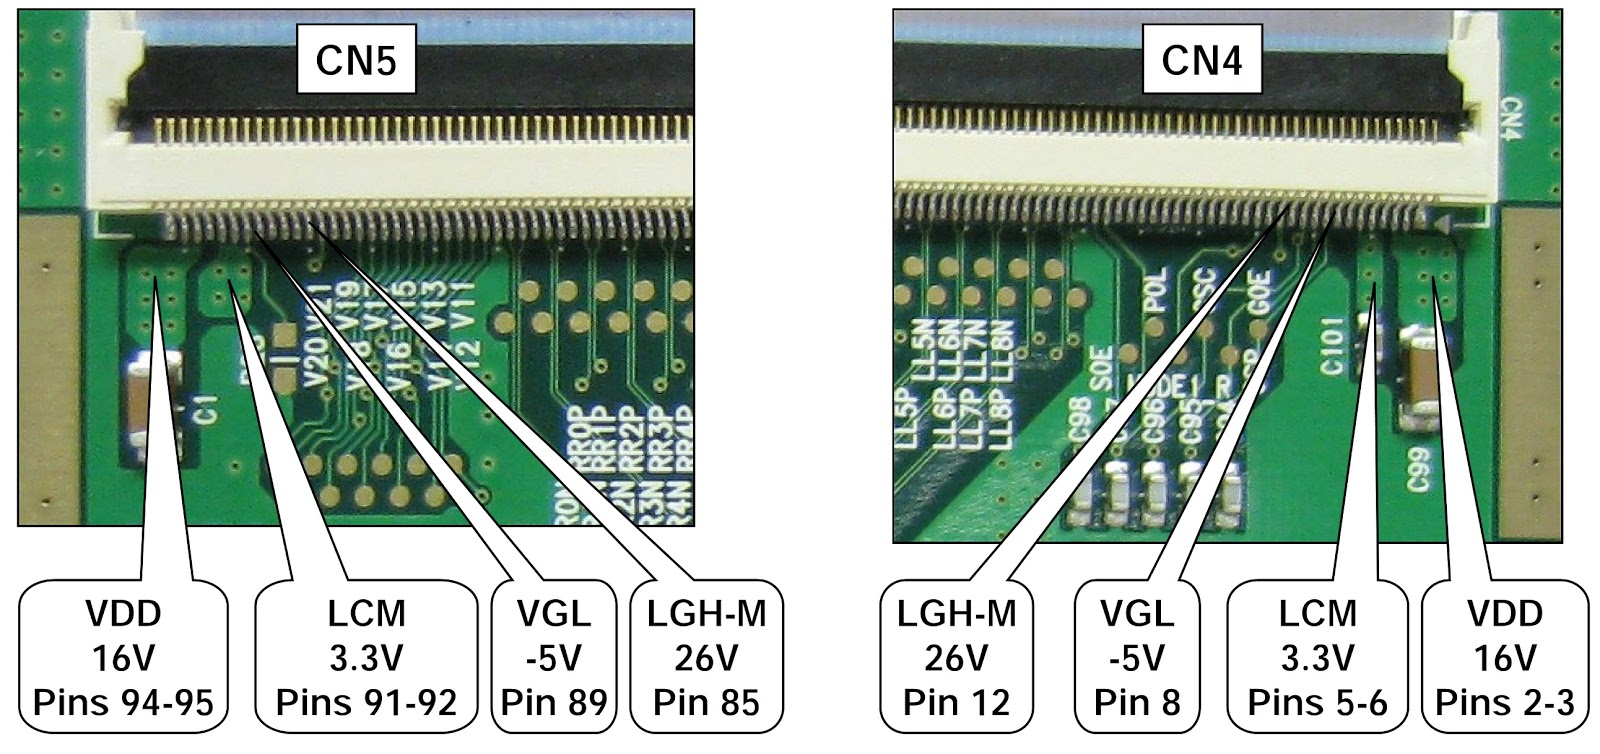 Electro help: LG 47LG90 LED LCD TV  T'CON BOARD  VOLTAGE CHECK  FUSE CHECK  VOLTAGE CHART